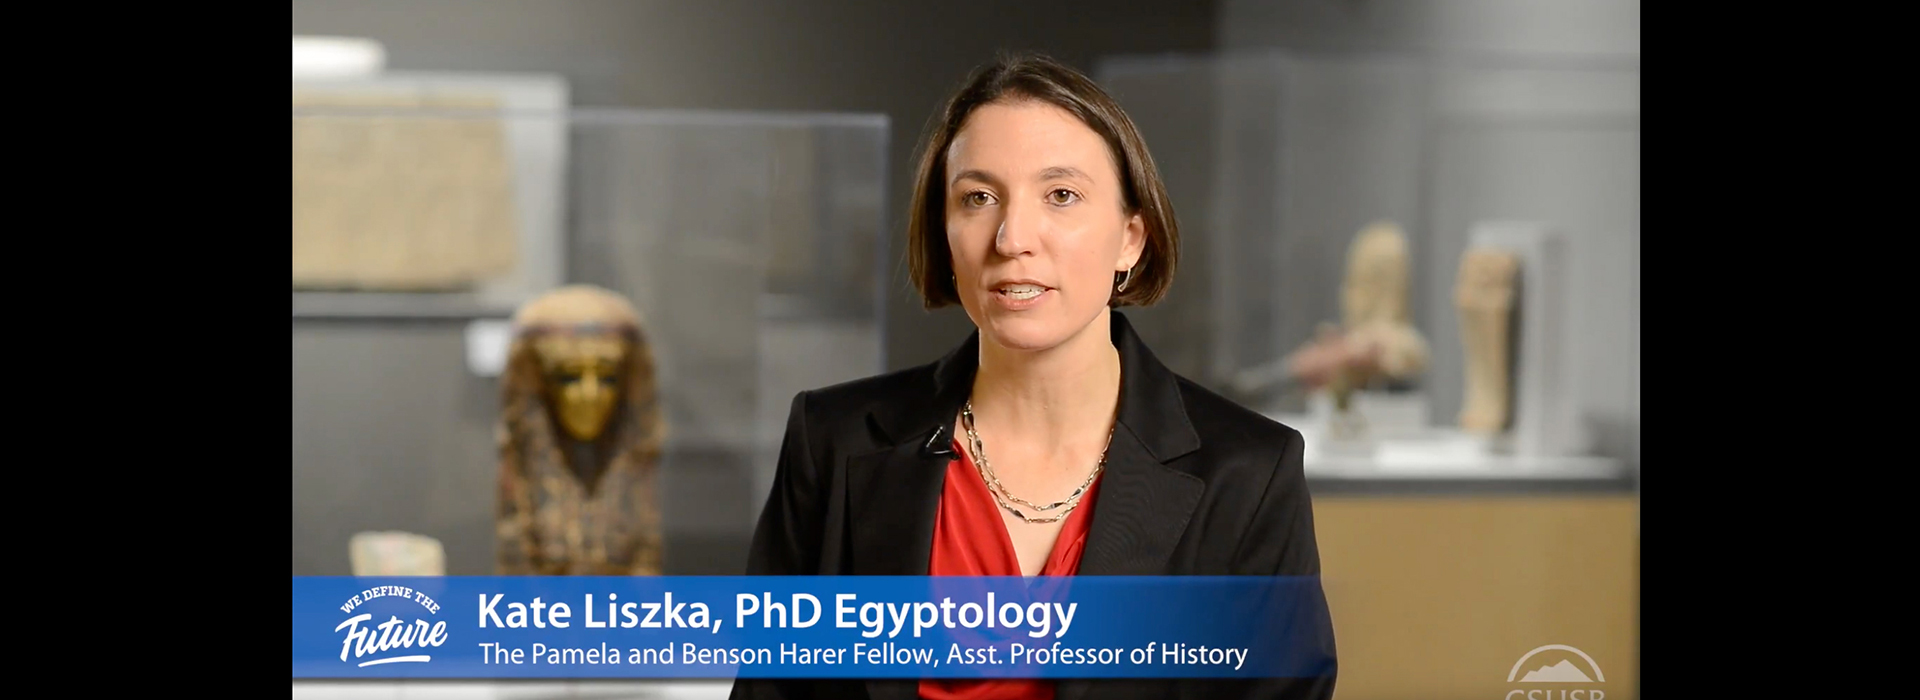 Academic serves as CSUSB's specialist in Egyptology